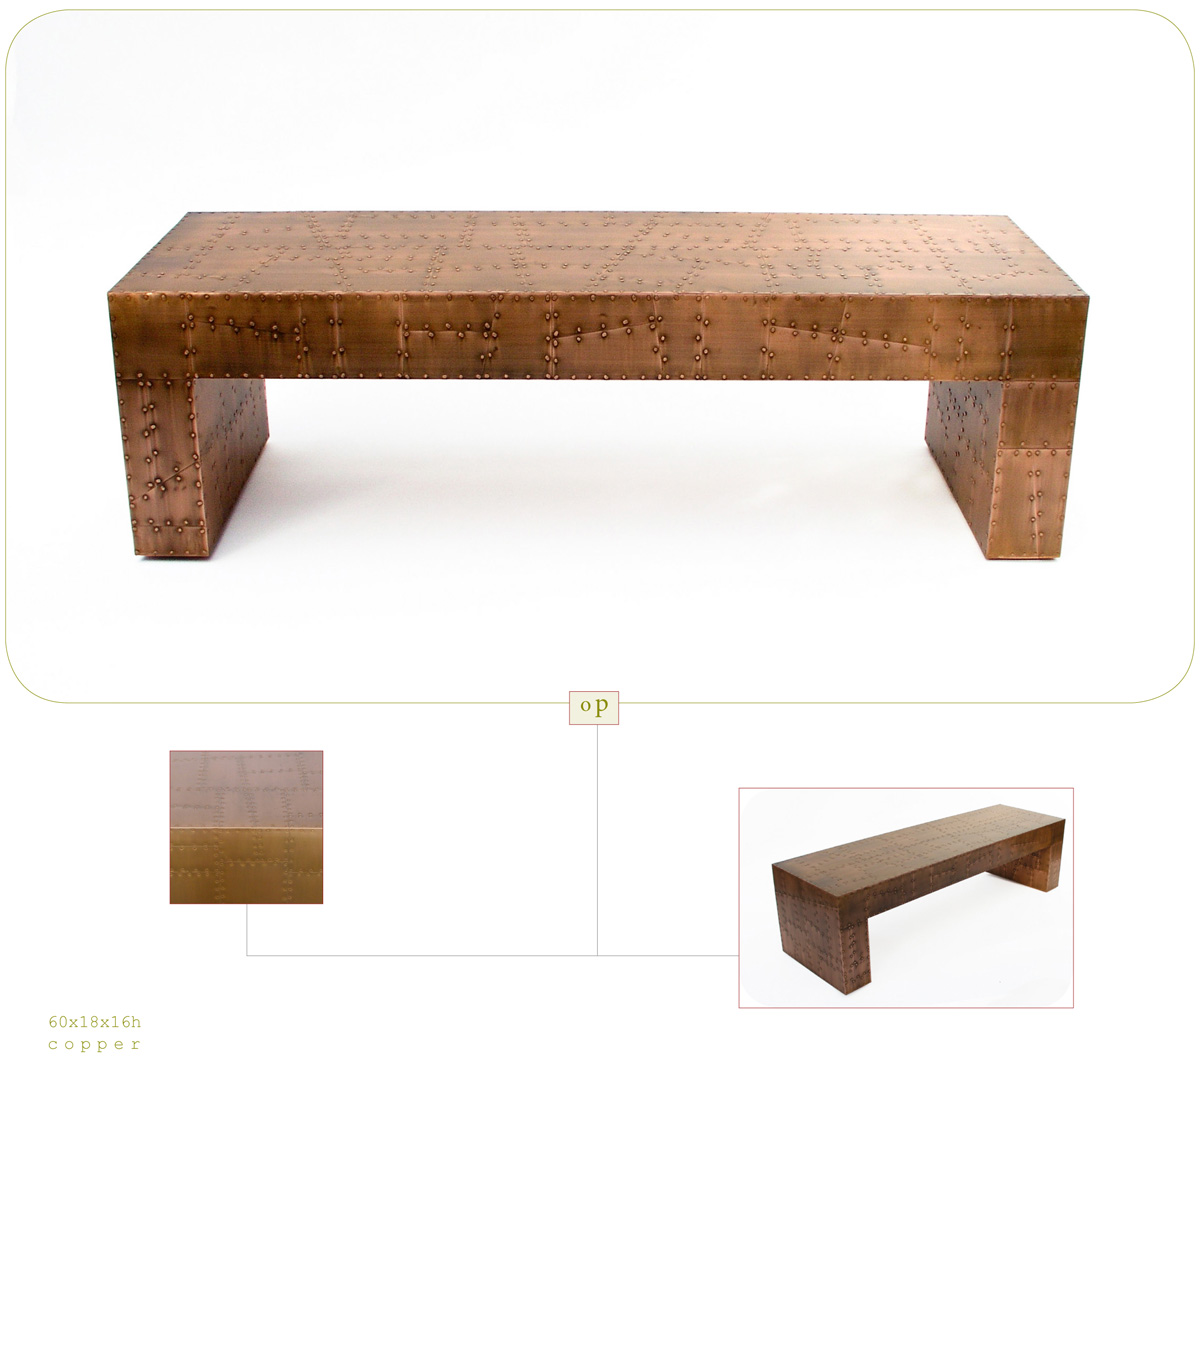 Op is a contemporary coffee table made out of copper measuring 60 x 18 x 16 inches made by Chad Manley Design.